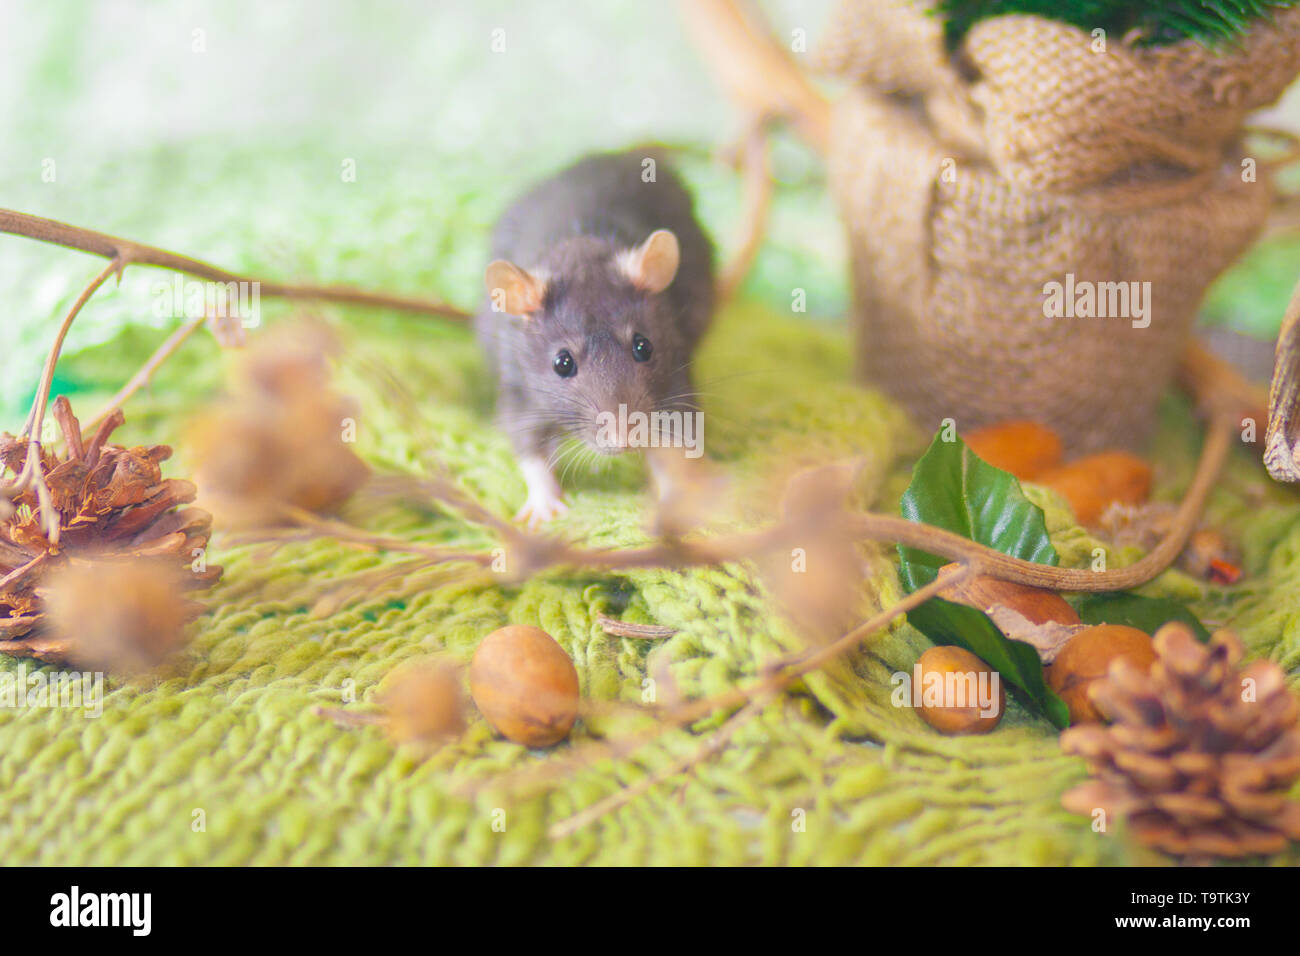 The concept of a forest tale. A gray rat on a green background. Mouse on grass. Beautiful rodent. - Stock Image